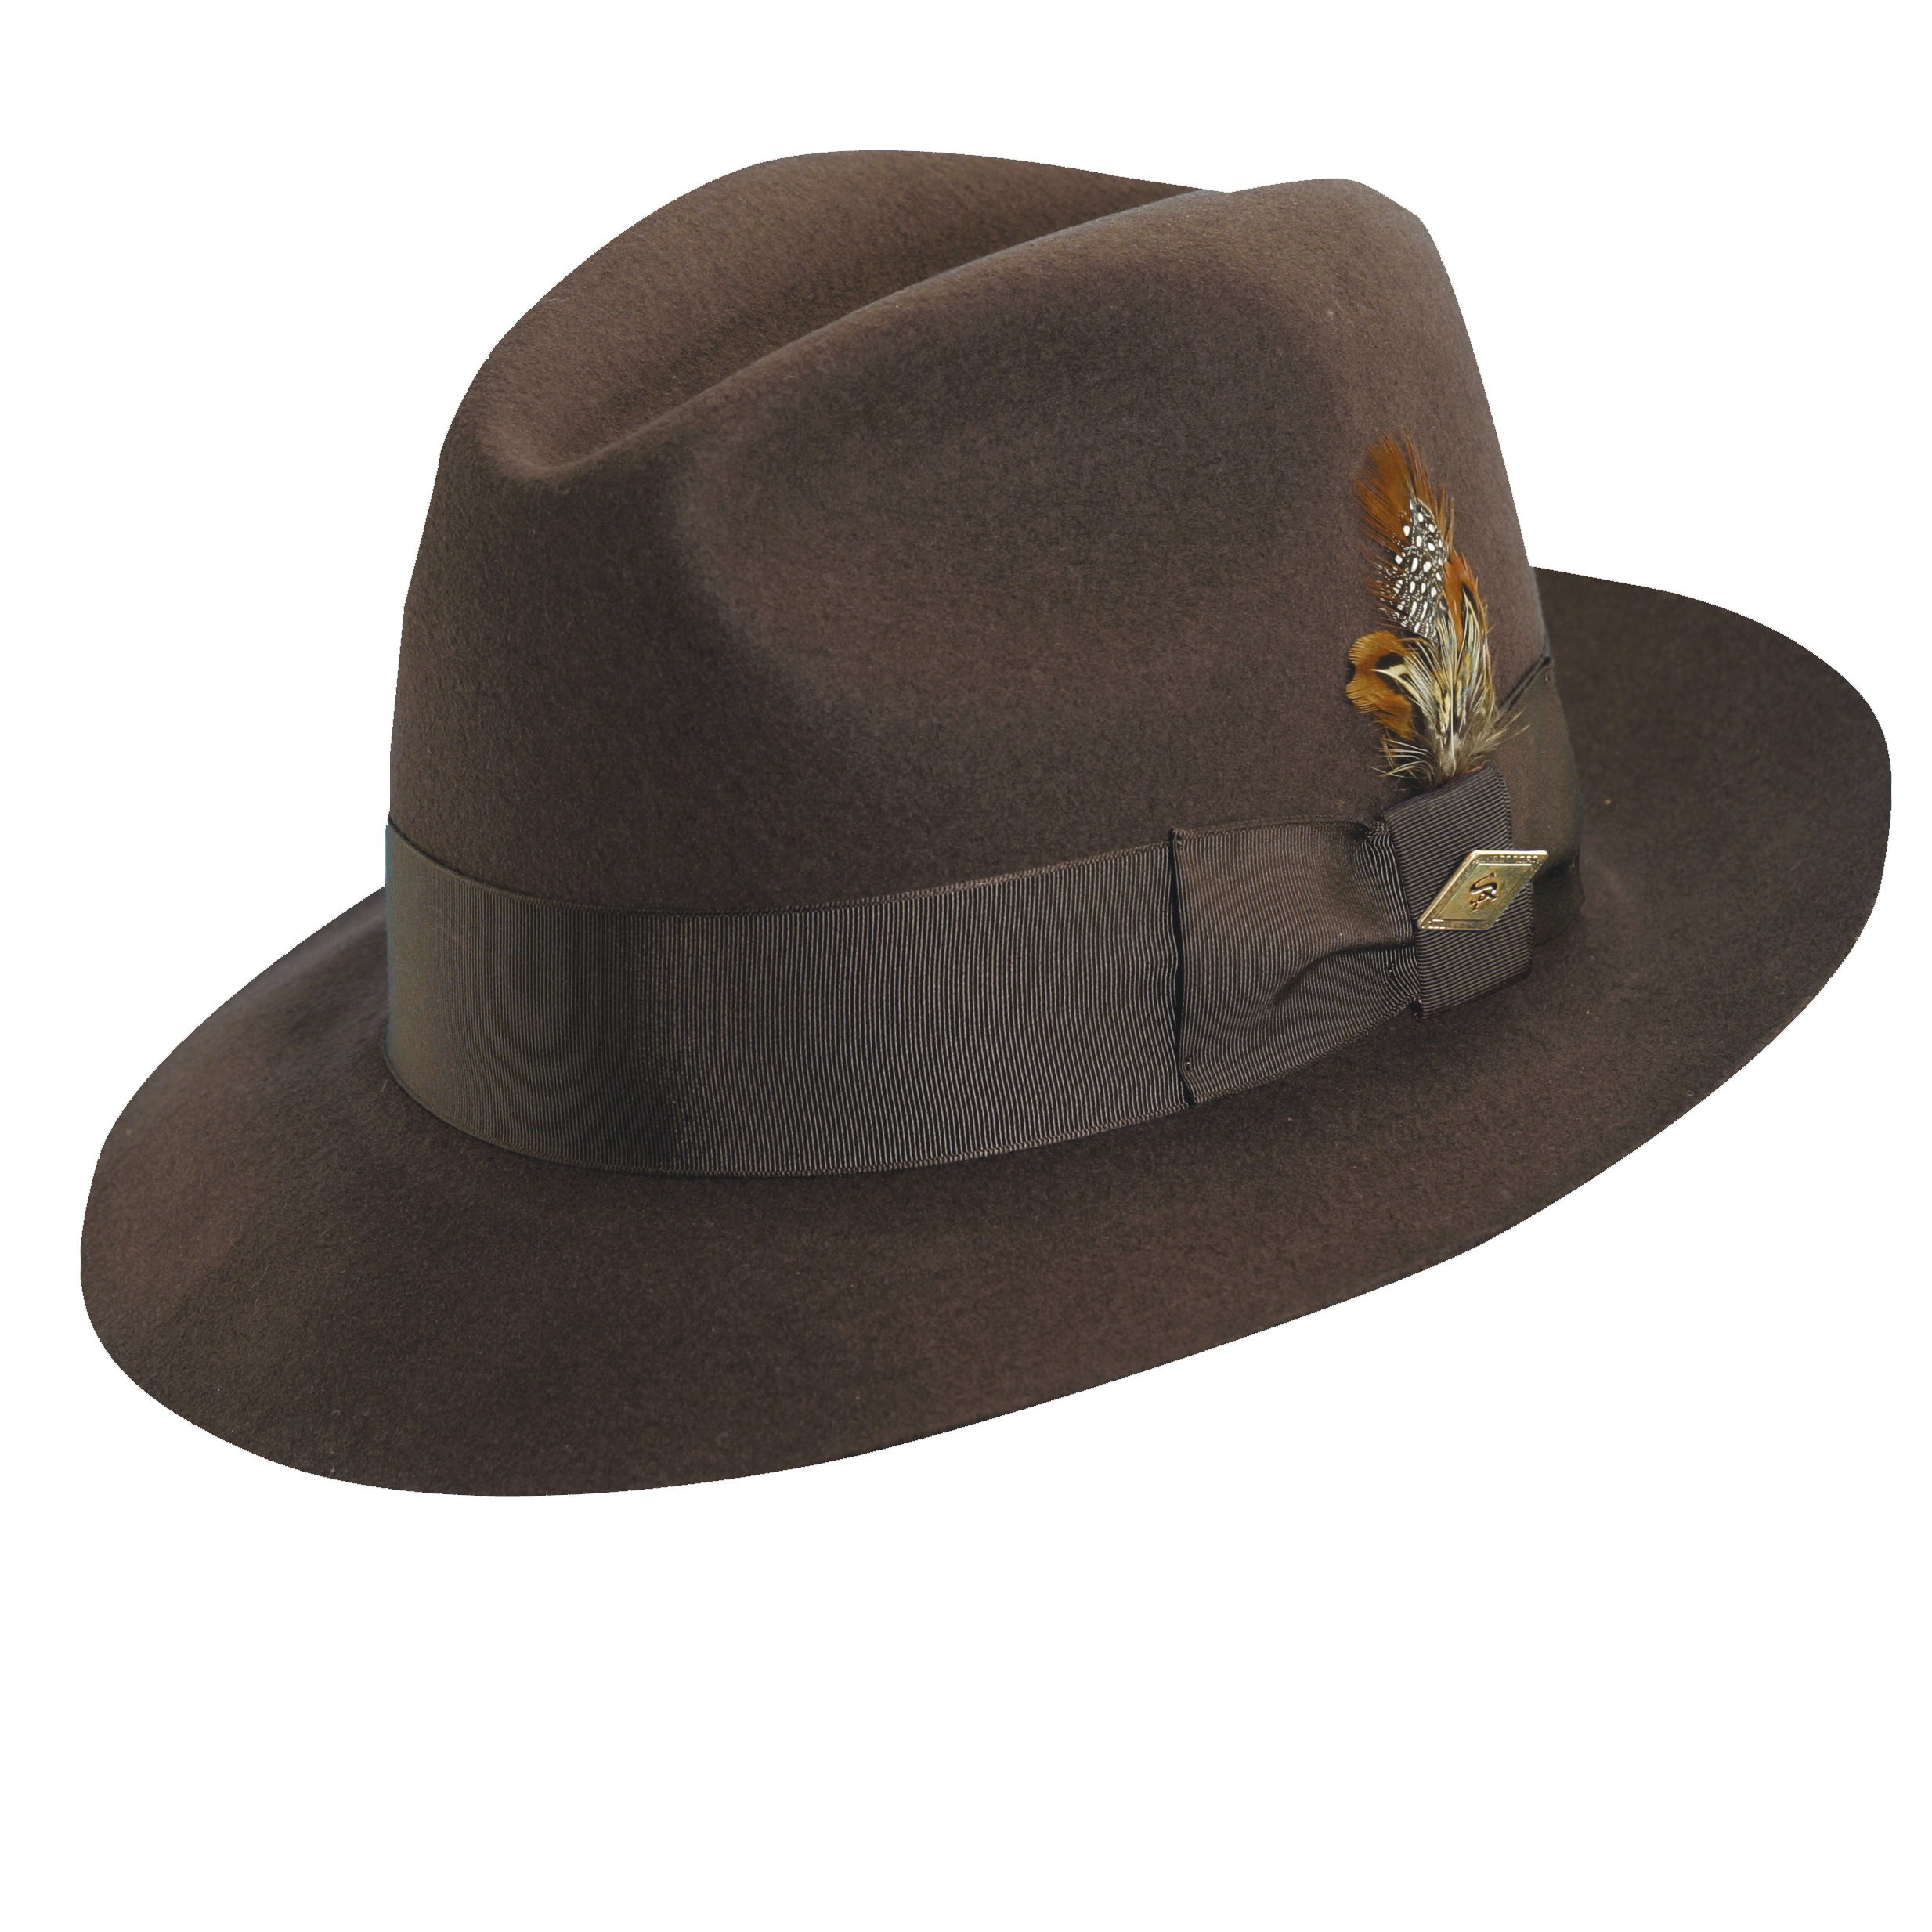 b40df71117d Stacy Adams Wool Felt Fedora Brown